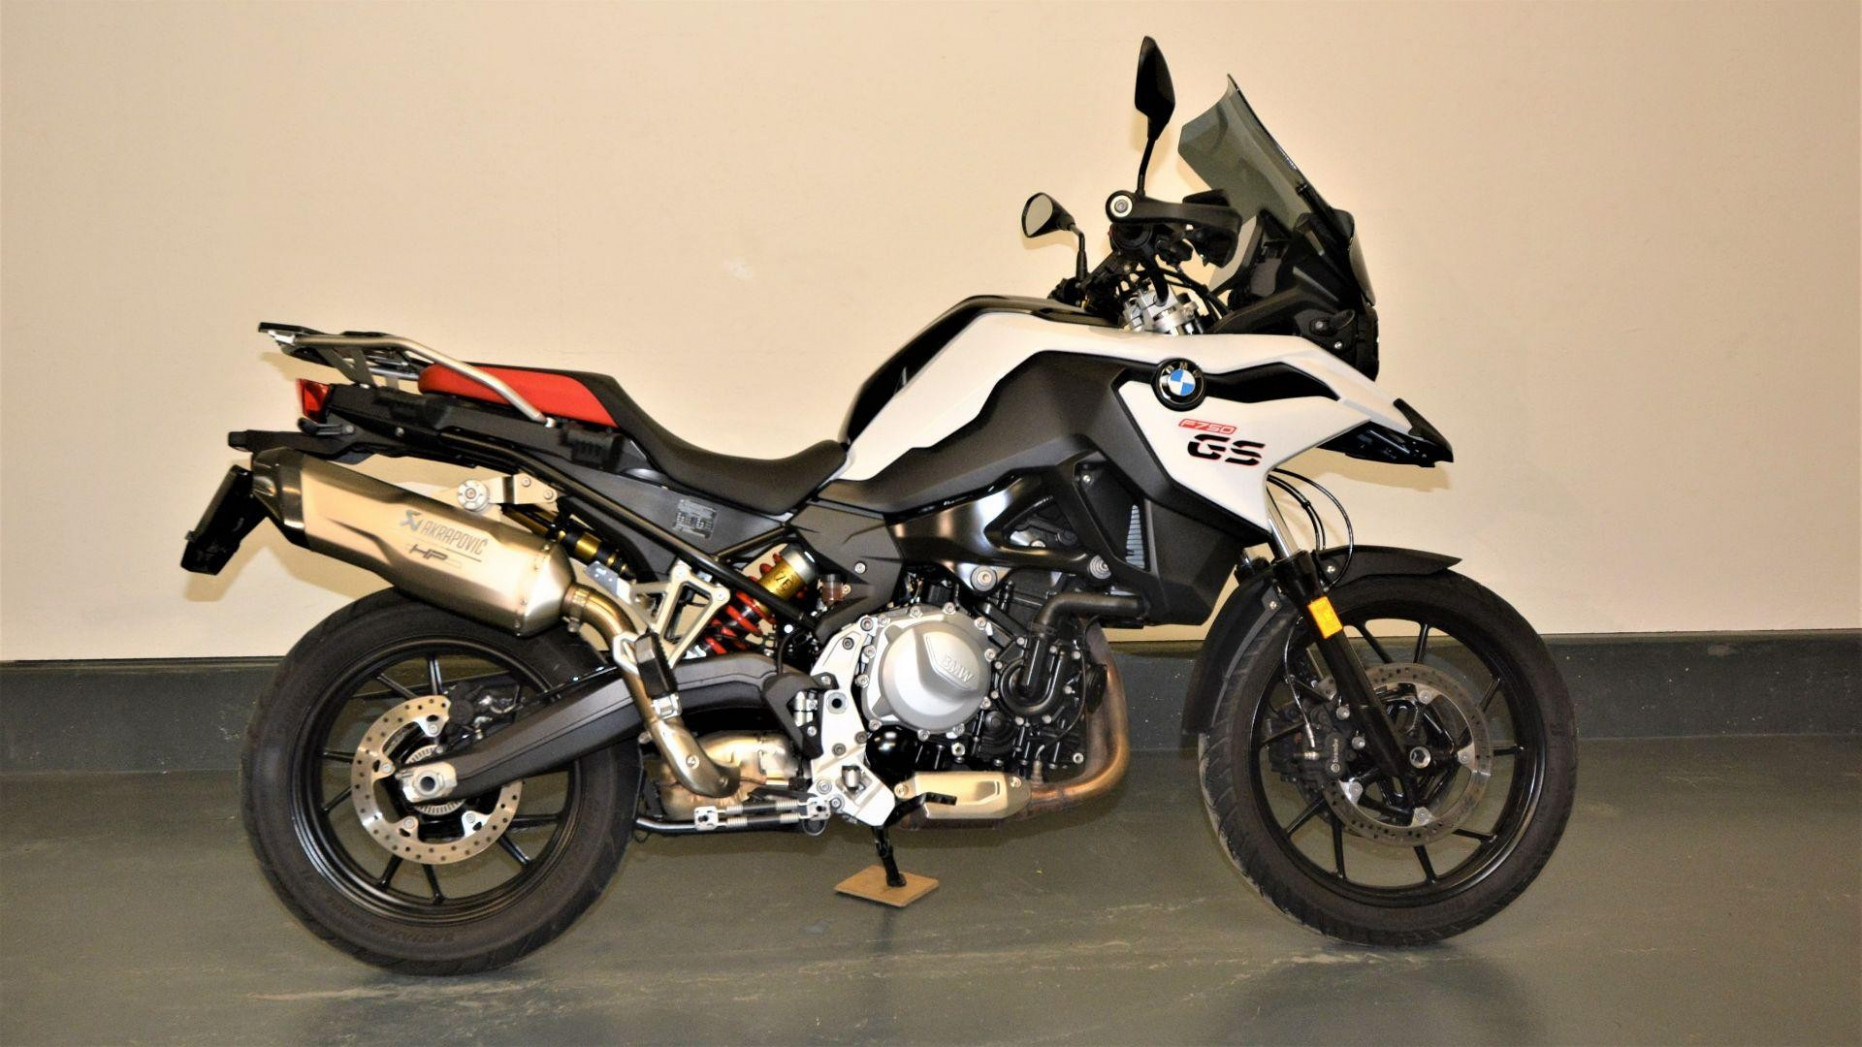 New Model and Performance BMW F750Gs 2022